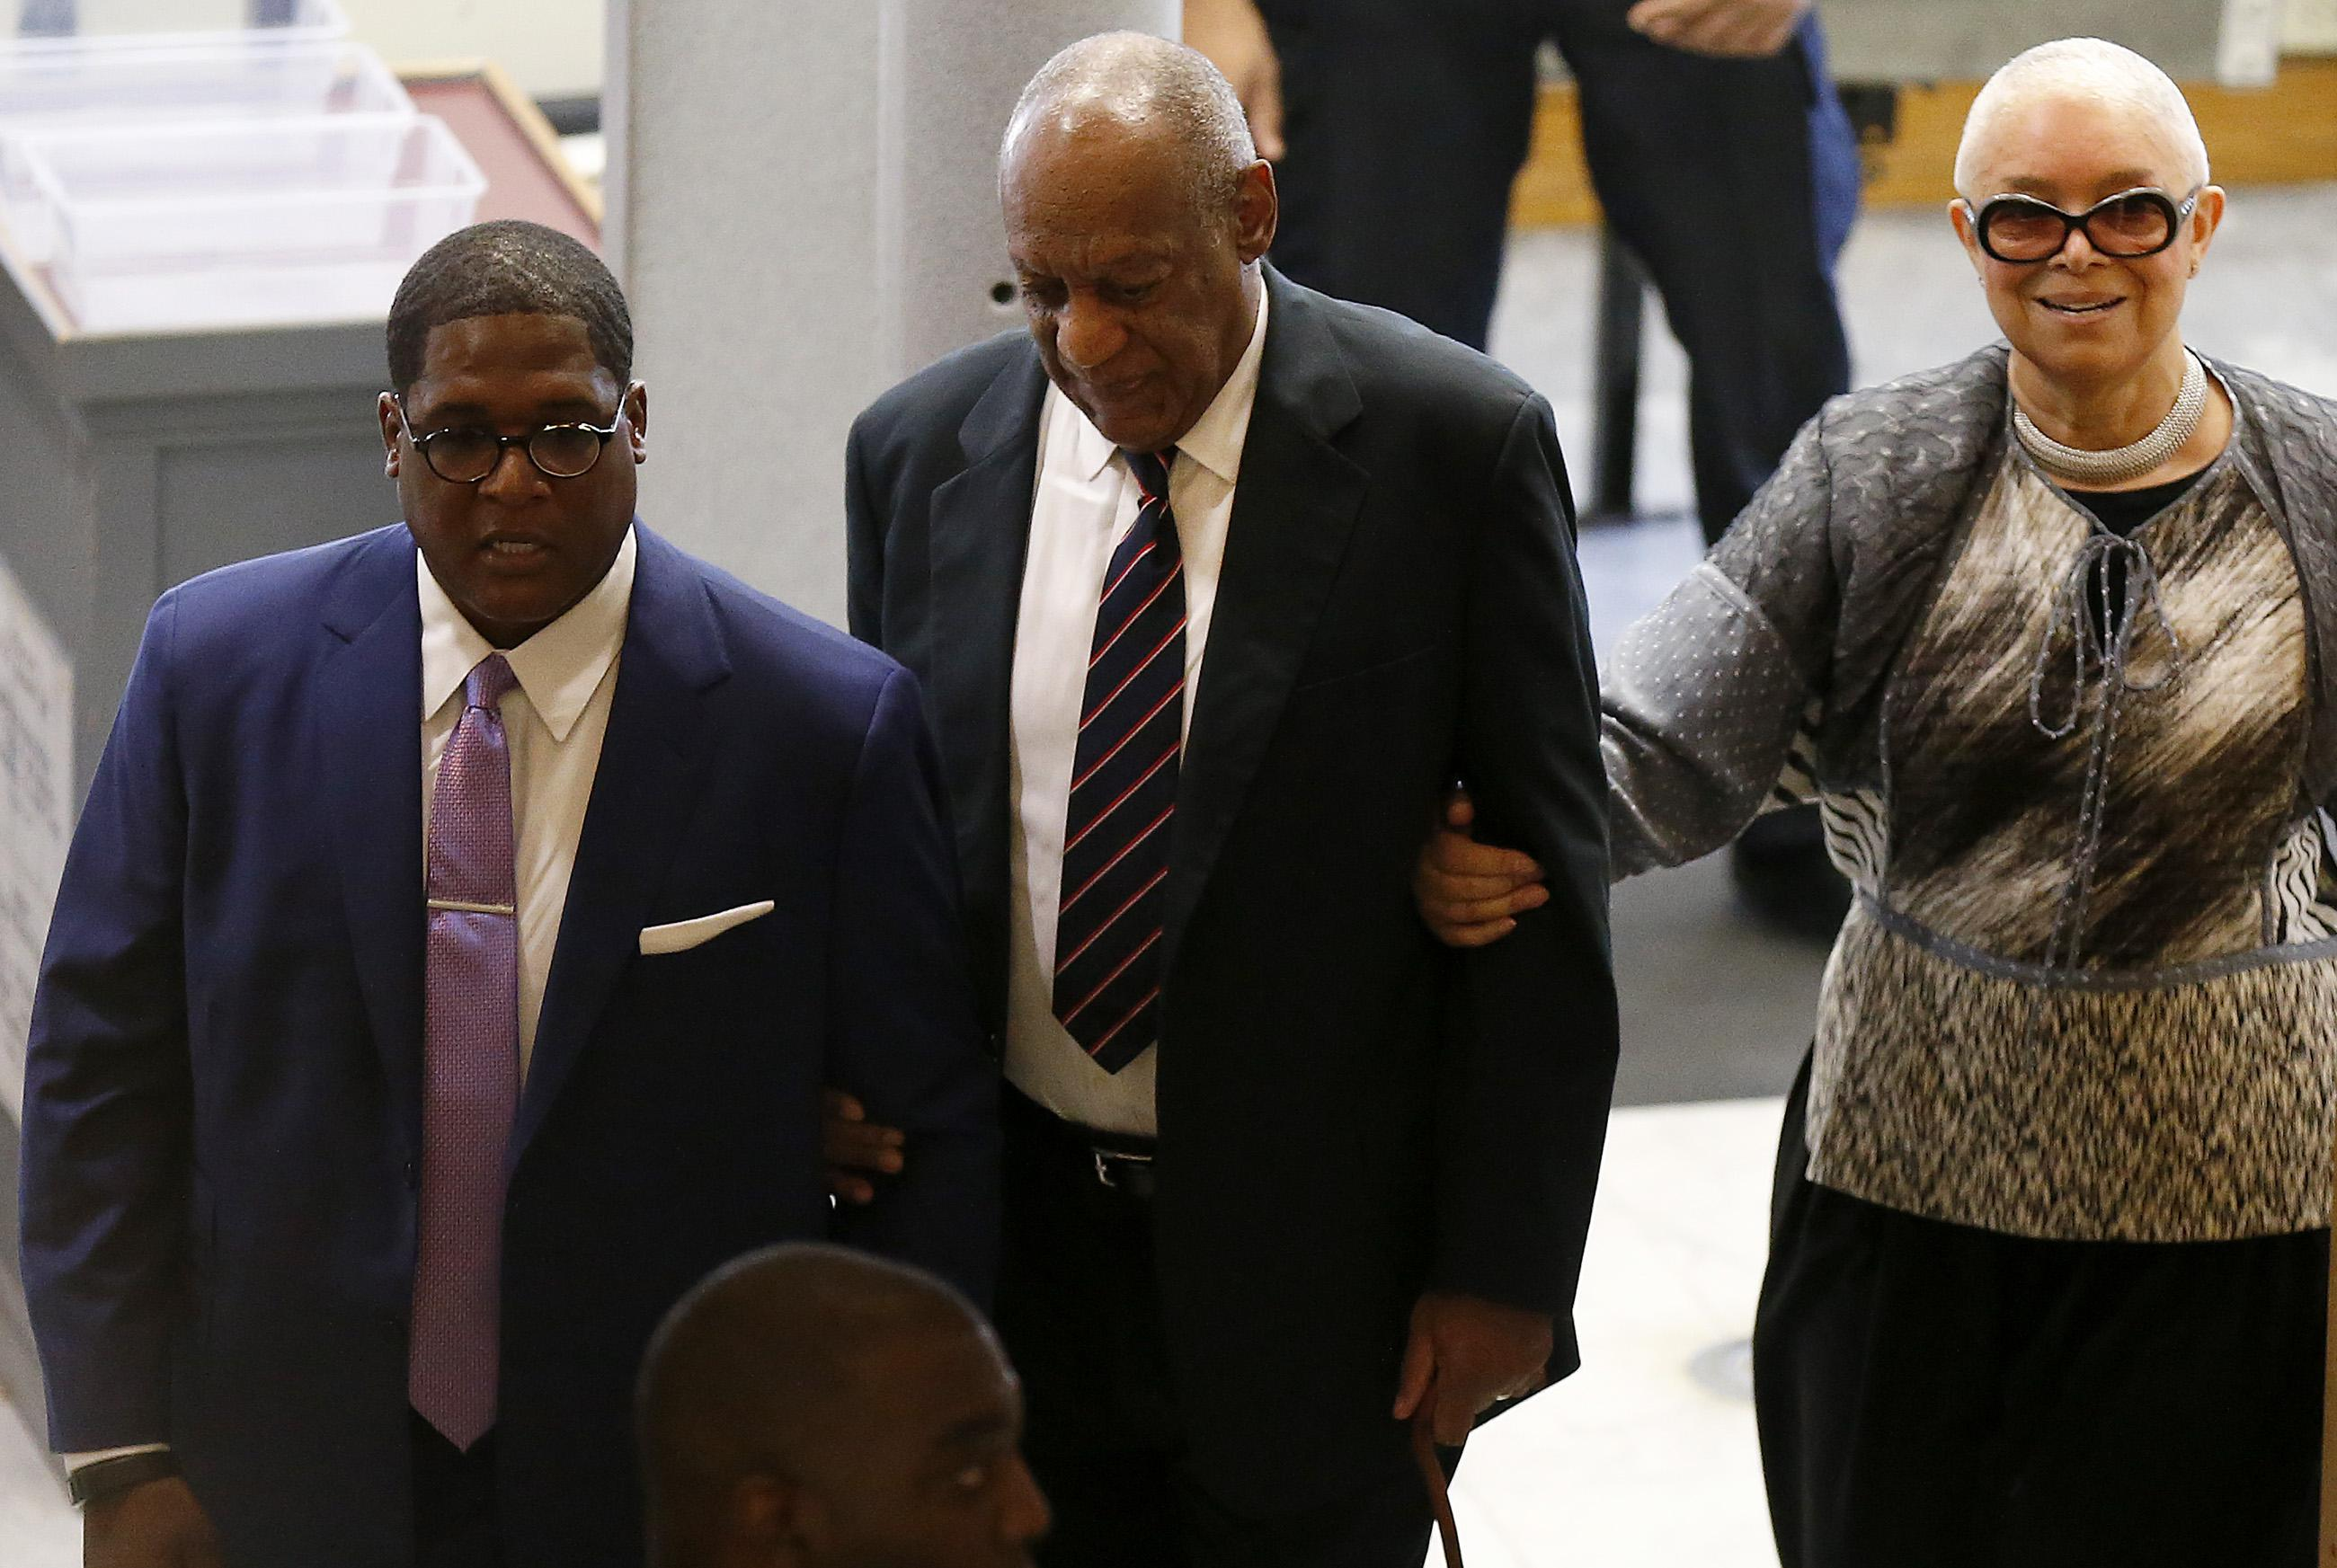 NORRISTOWN, PA - JUNE 12:  Bill (C) and Camille Cosby and aide Andrew Wyatt enter the Montgomery County Courthouse on June 12, 2017 in in Norristown, Pennsylvania. A former Temple University employee alleges that the entertainer drugged and molested her in 2004 at his home in suburban Philadelphia.  More than 40 women have accused the 79-year-old entertainer of sexual assault.  (Photo by David Maialetti-Pool/Getty Images)